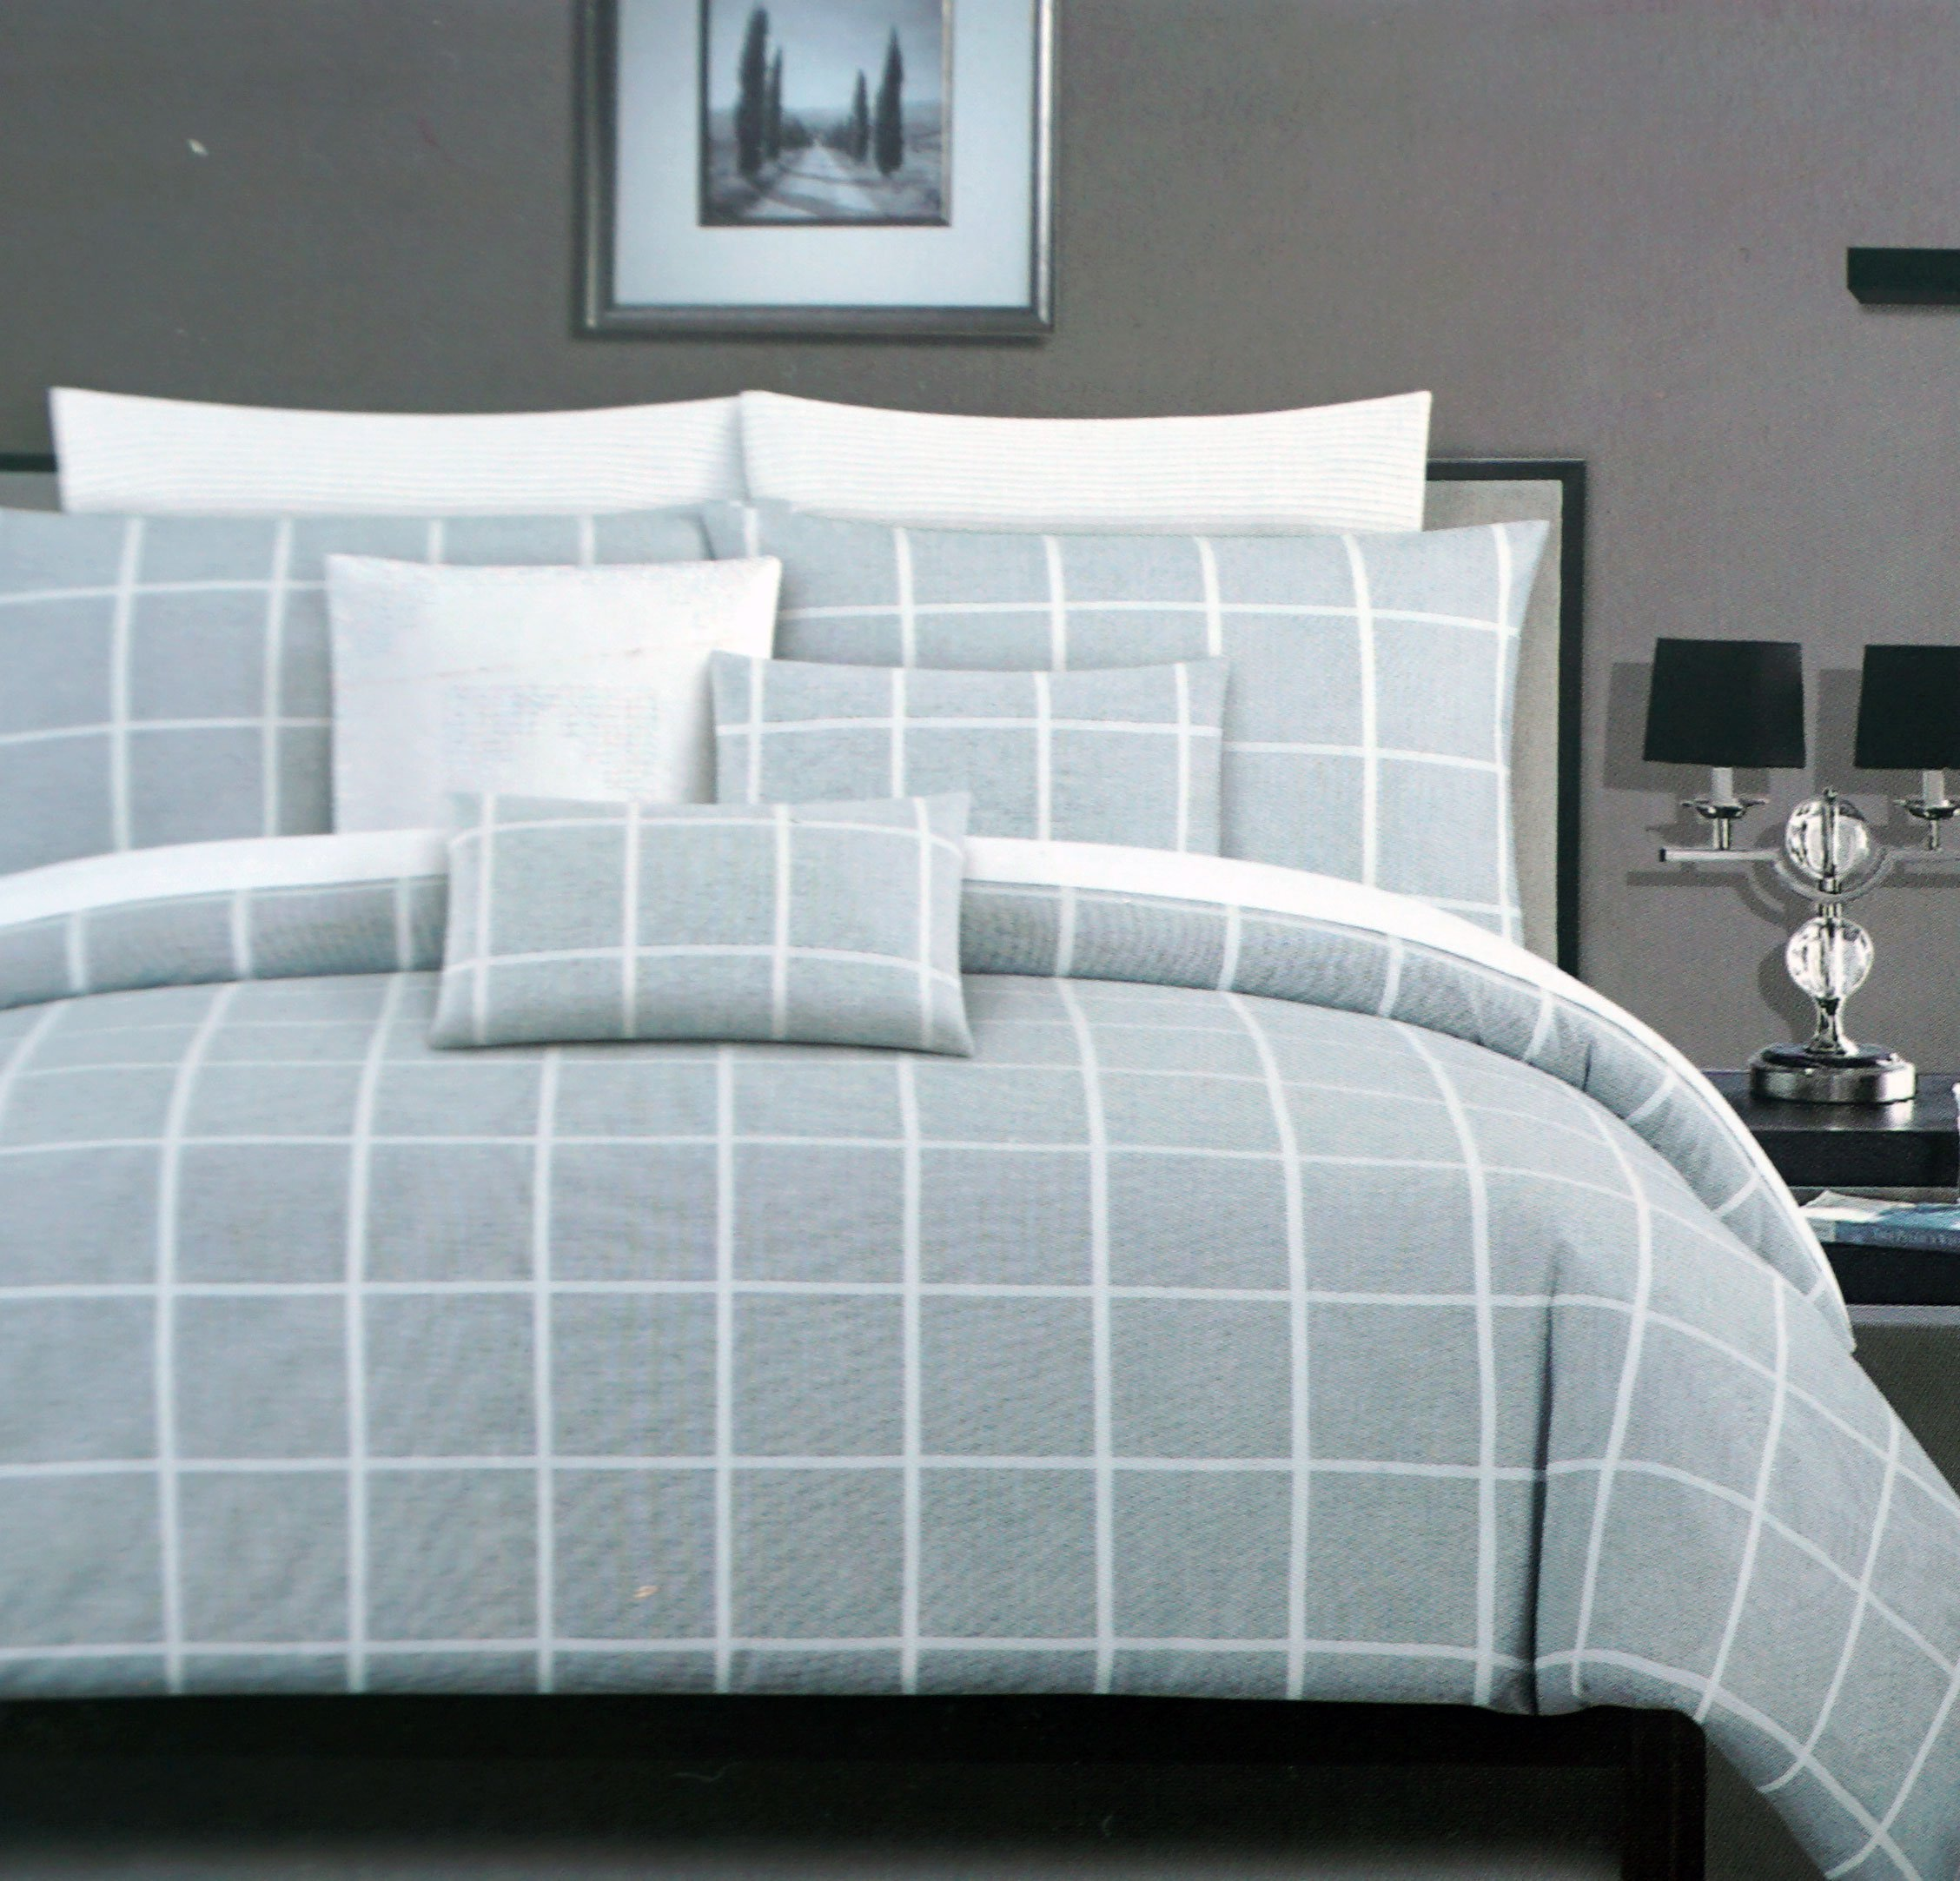 Tahari Bedding 3 Piece Full / Queen Duvet Cover Set Modern Geo Squares Textured Woven White Stripes Crosshatch Window Pane Plaid on a Background of White Gray Thread Mesh